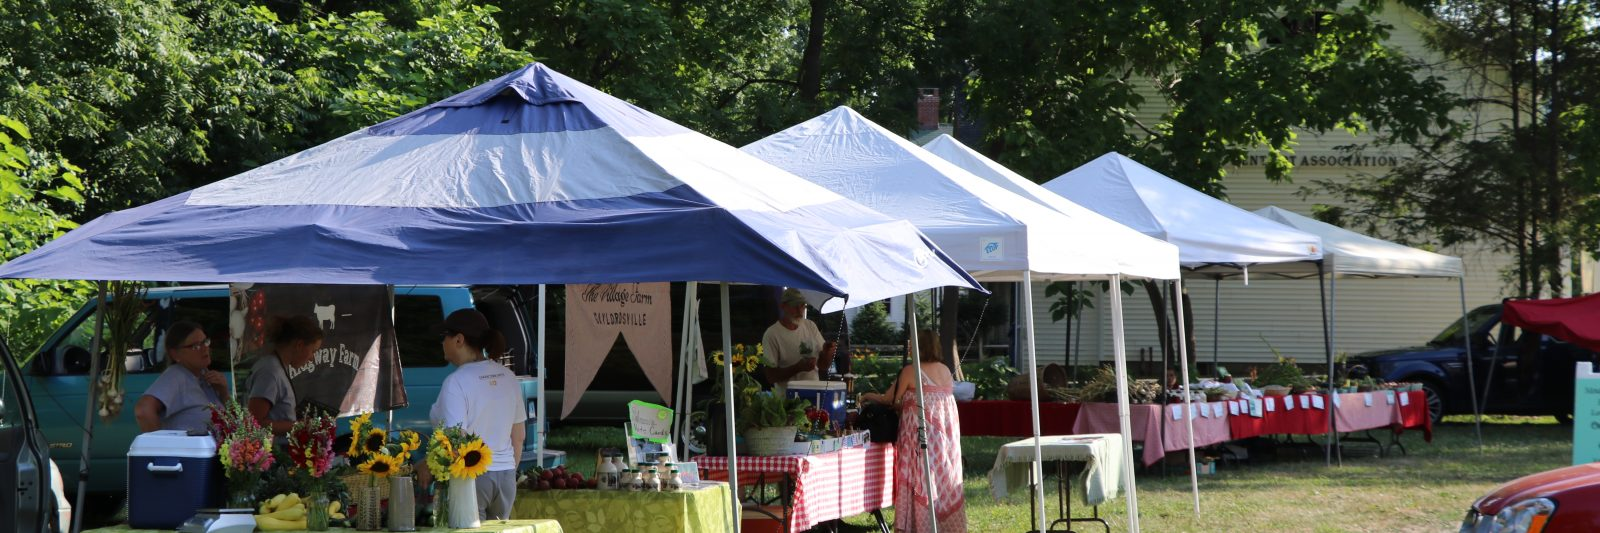 farmer's market tents